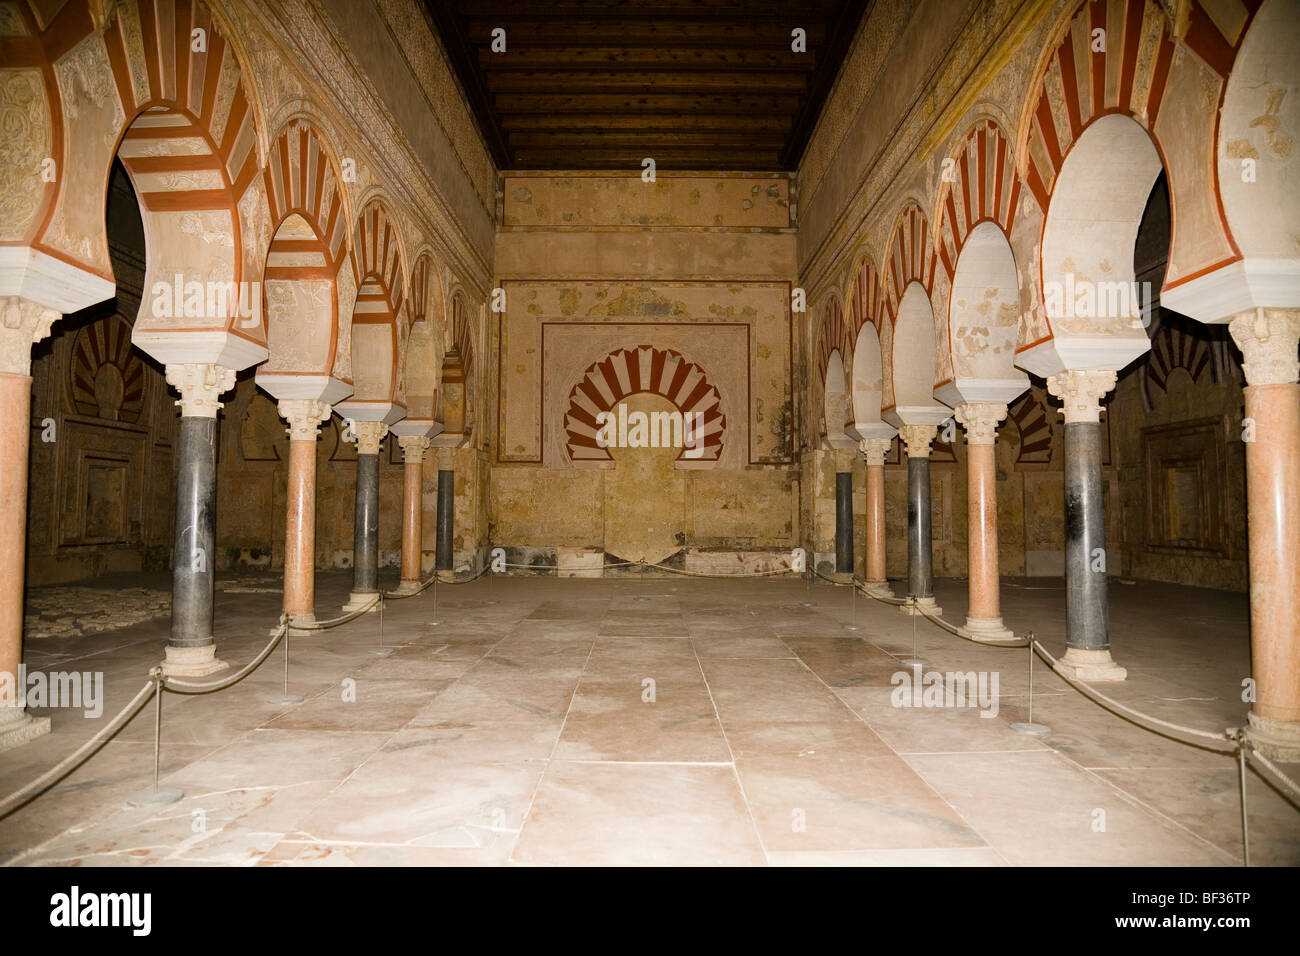 Spain,Andalusia, Madinat al-Zahra, Hall of Abd al-Rahman III